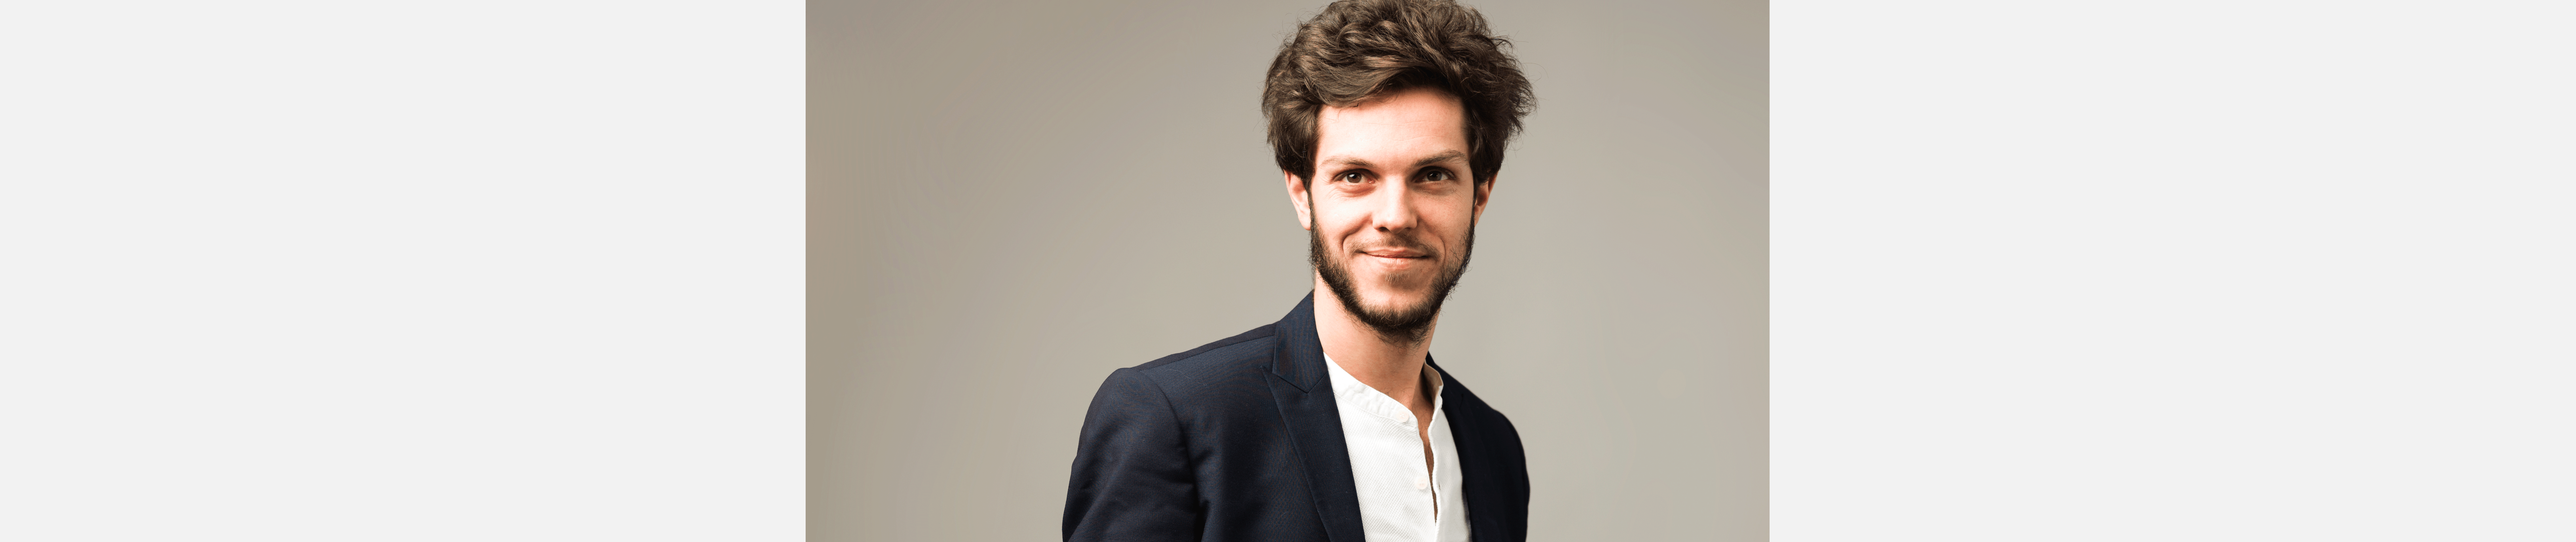 Raphaël Pichon conducts selected Bach Cantatas – With Ensemble Pygmalion, Joanne Lunn, Tim Mead